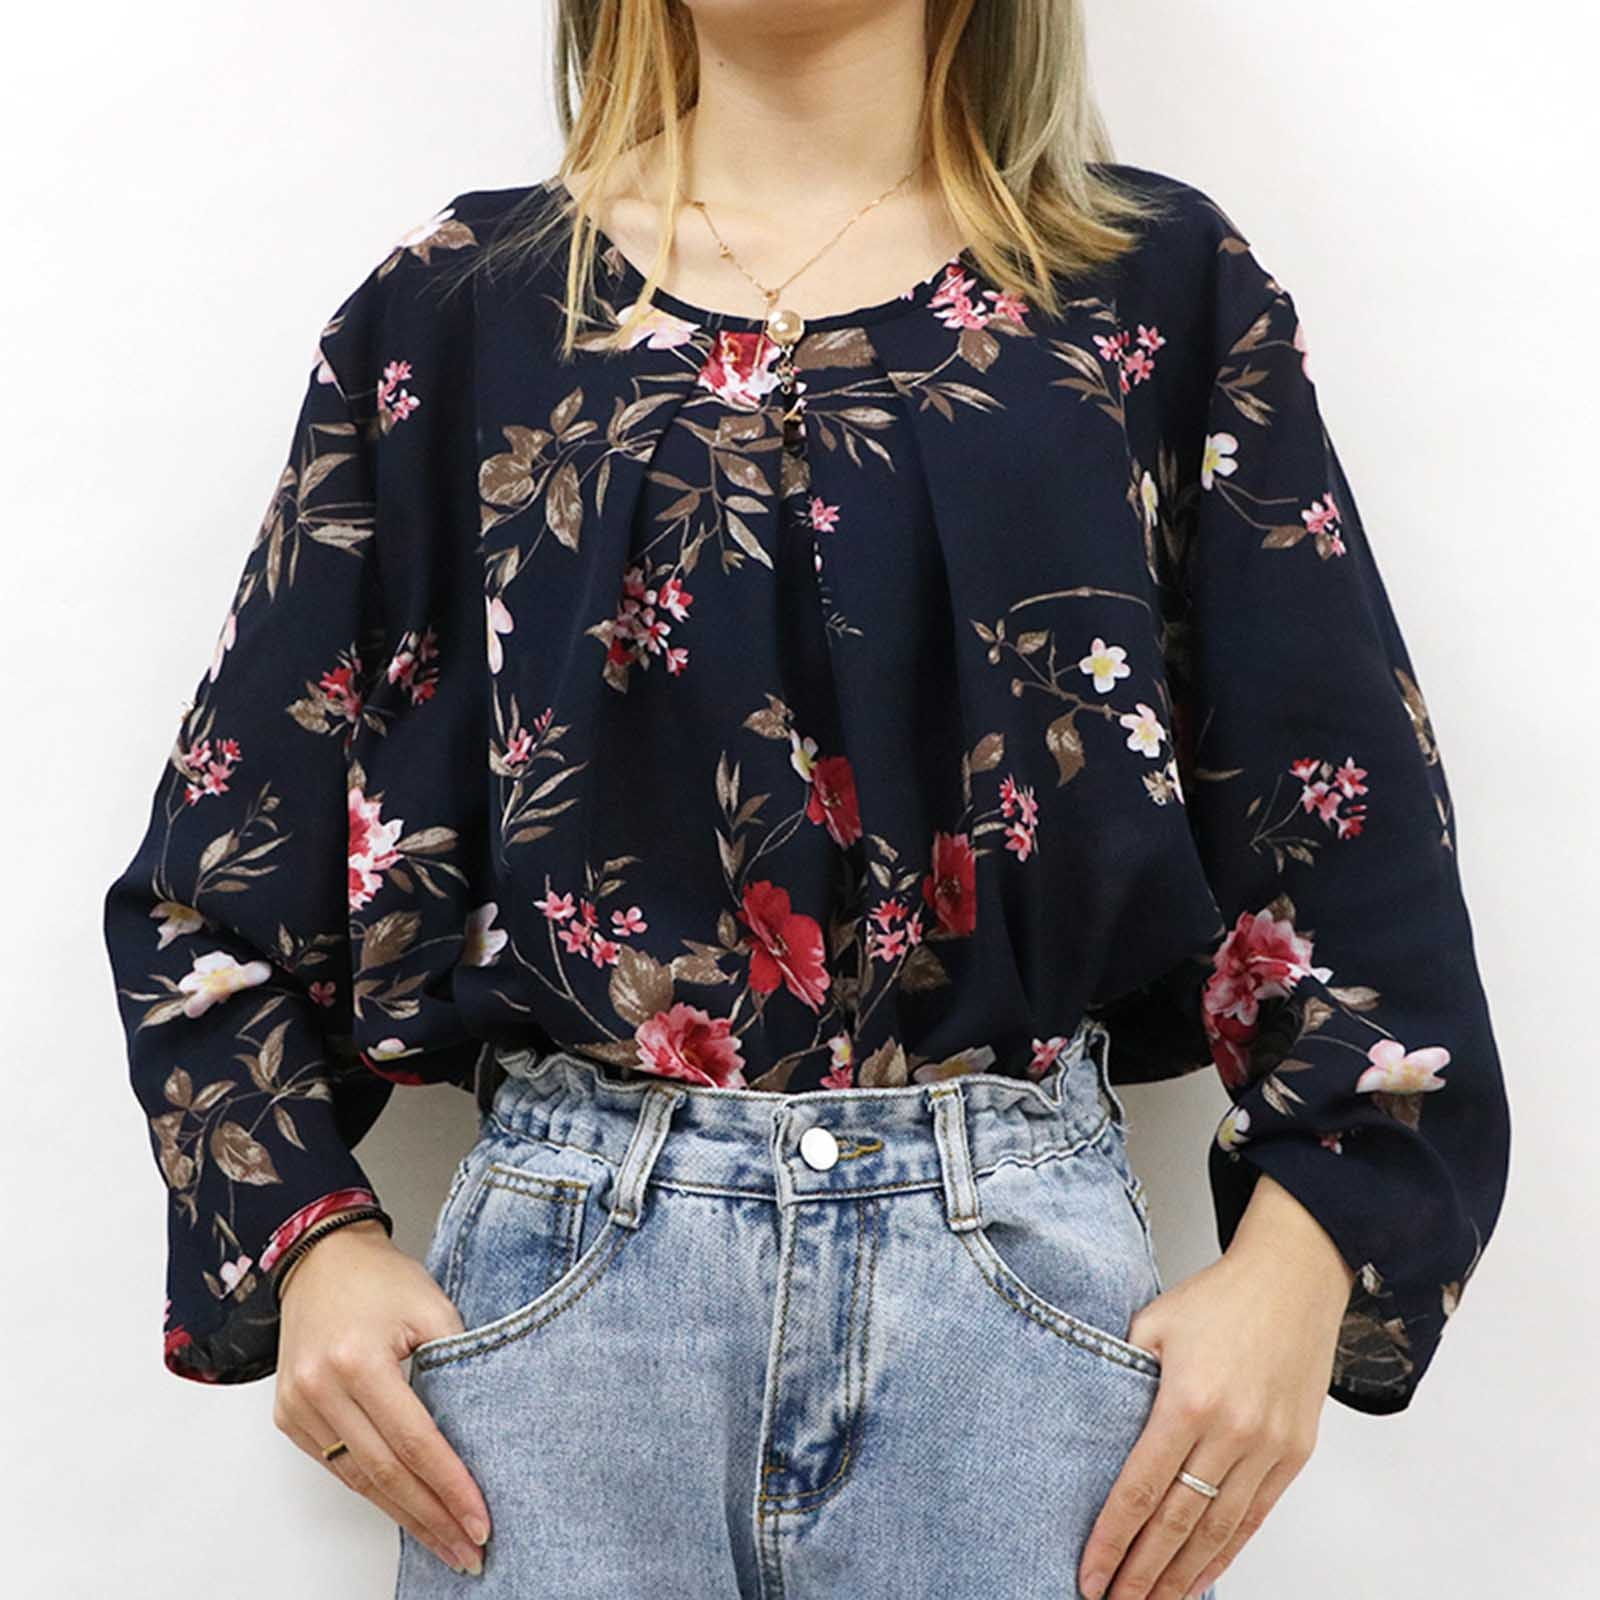 Womens Fashion Plus Size Printing Long Sleeves Korean Style Blusas News Design Casual Blouse Loose Oversized Blouses Female Tops